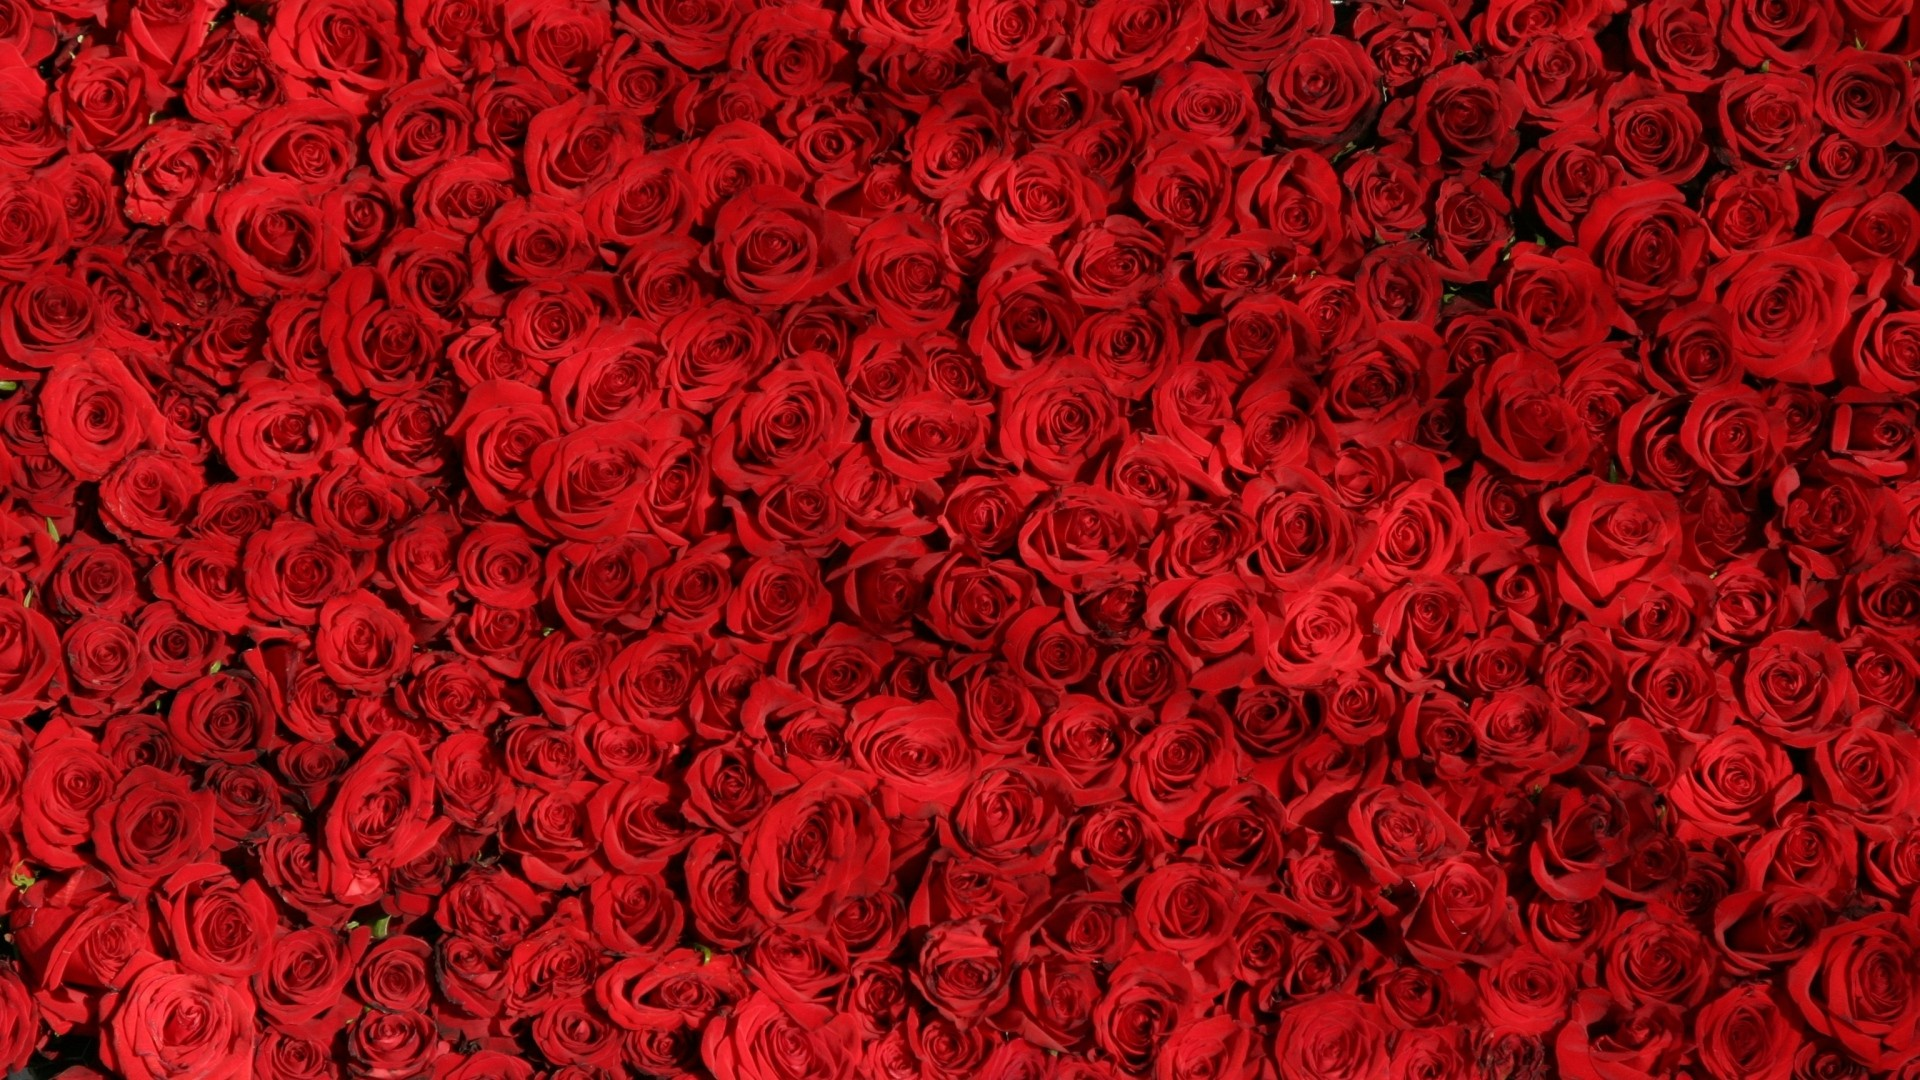 Red Rose Desktop Wallpaper